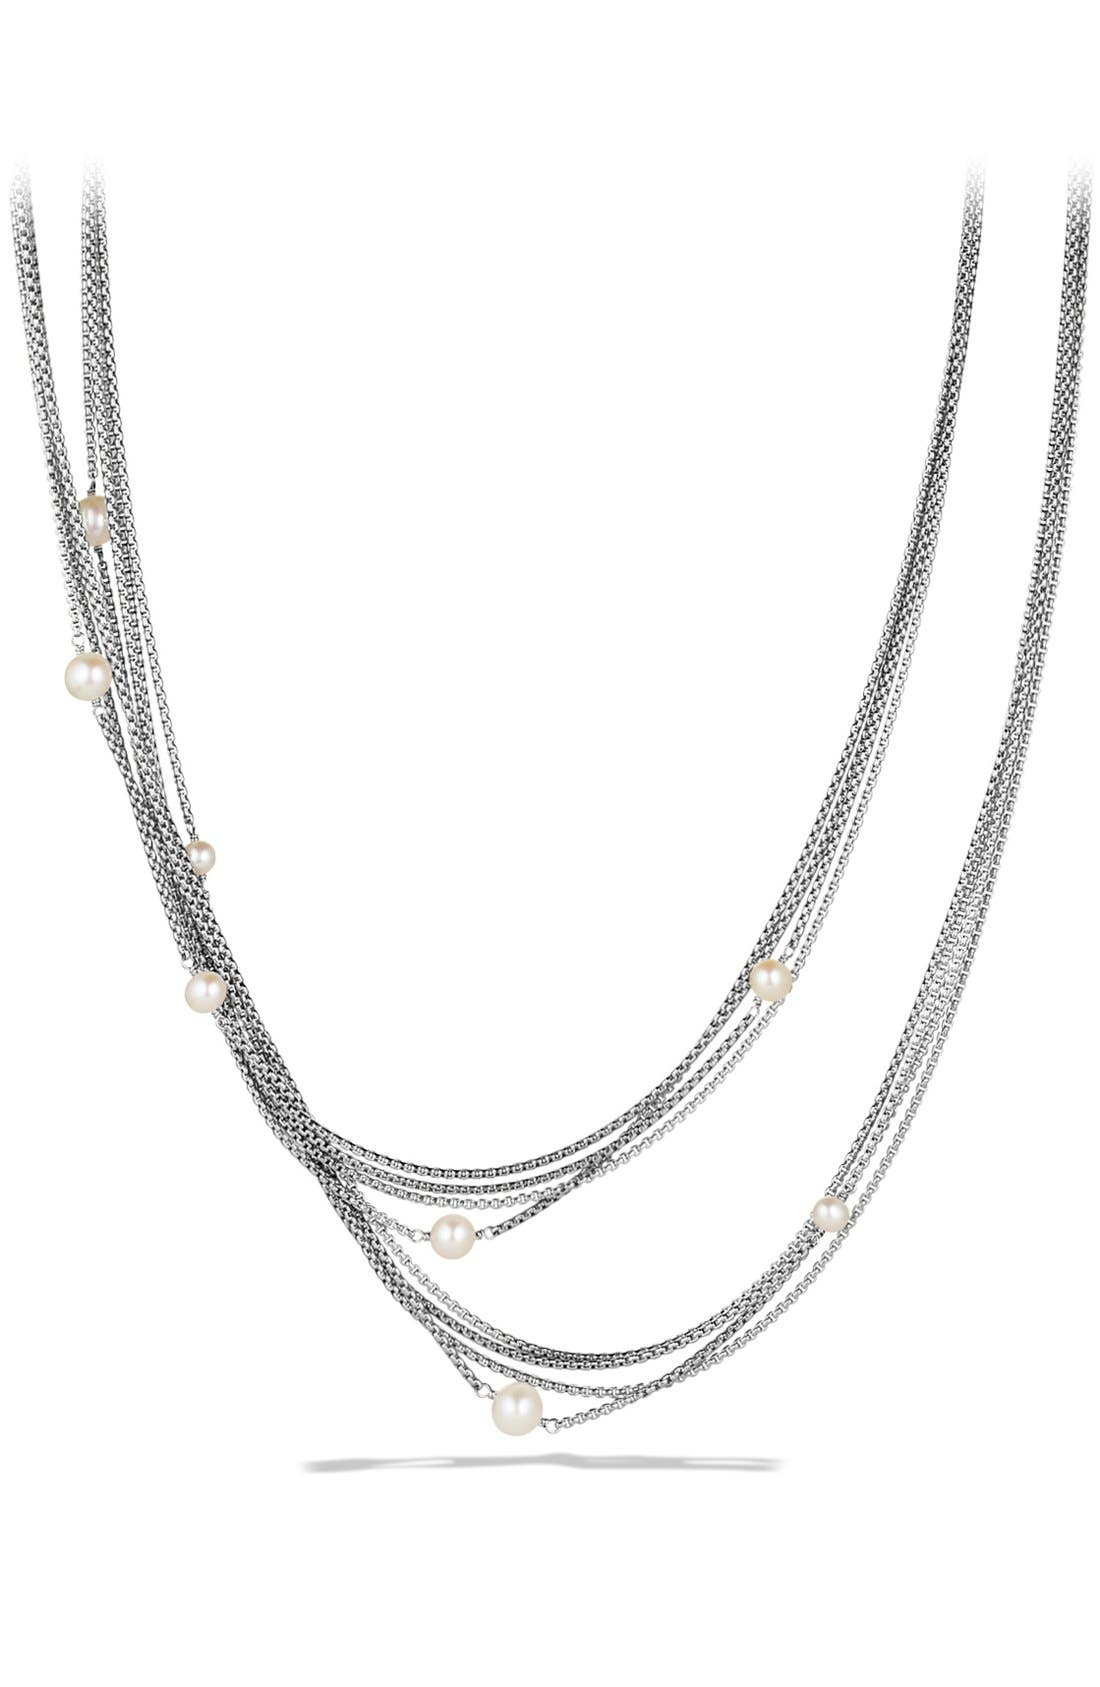 DAVID YURMAN Four-Row Chain Necklace with Pearls